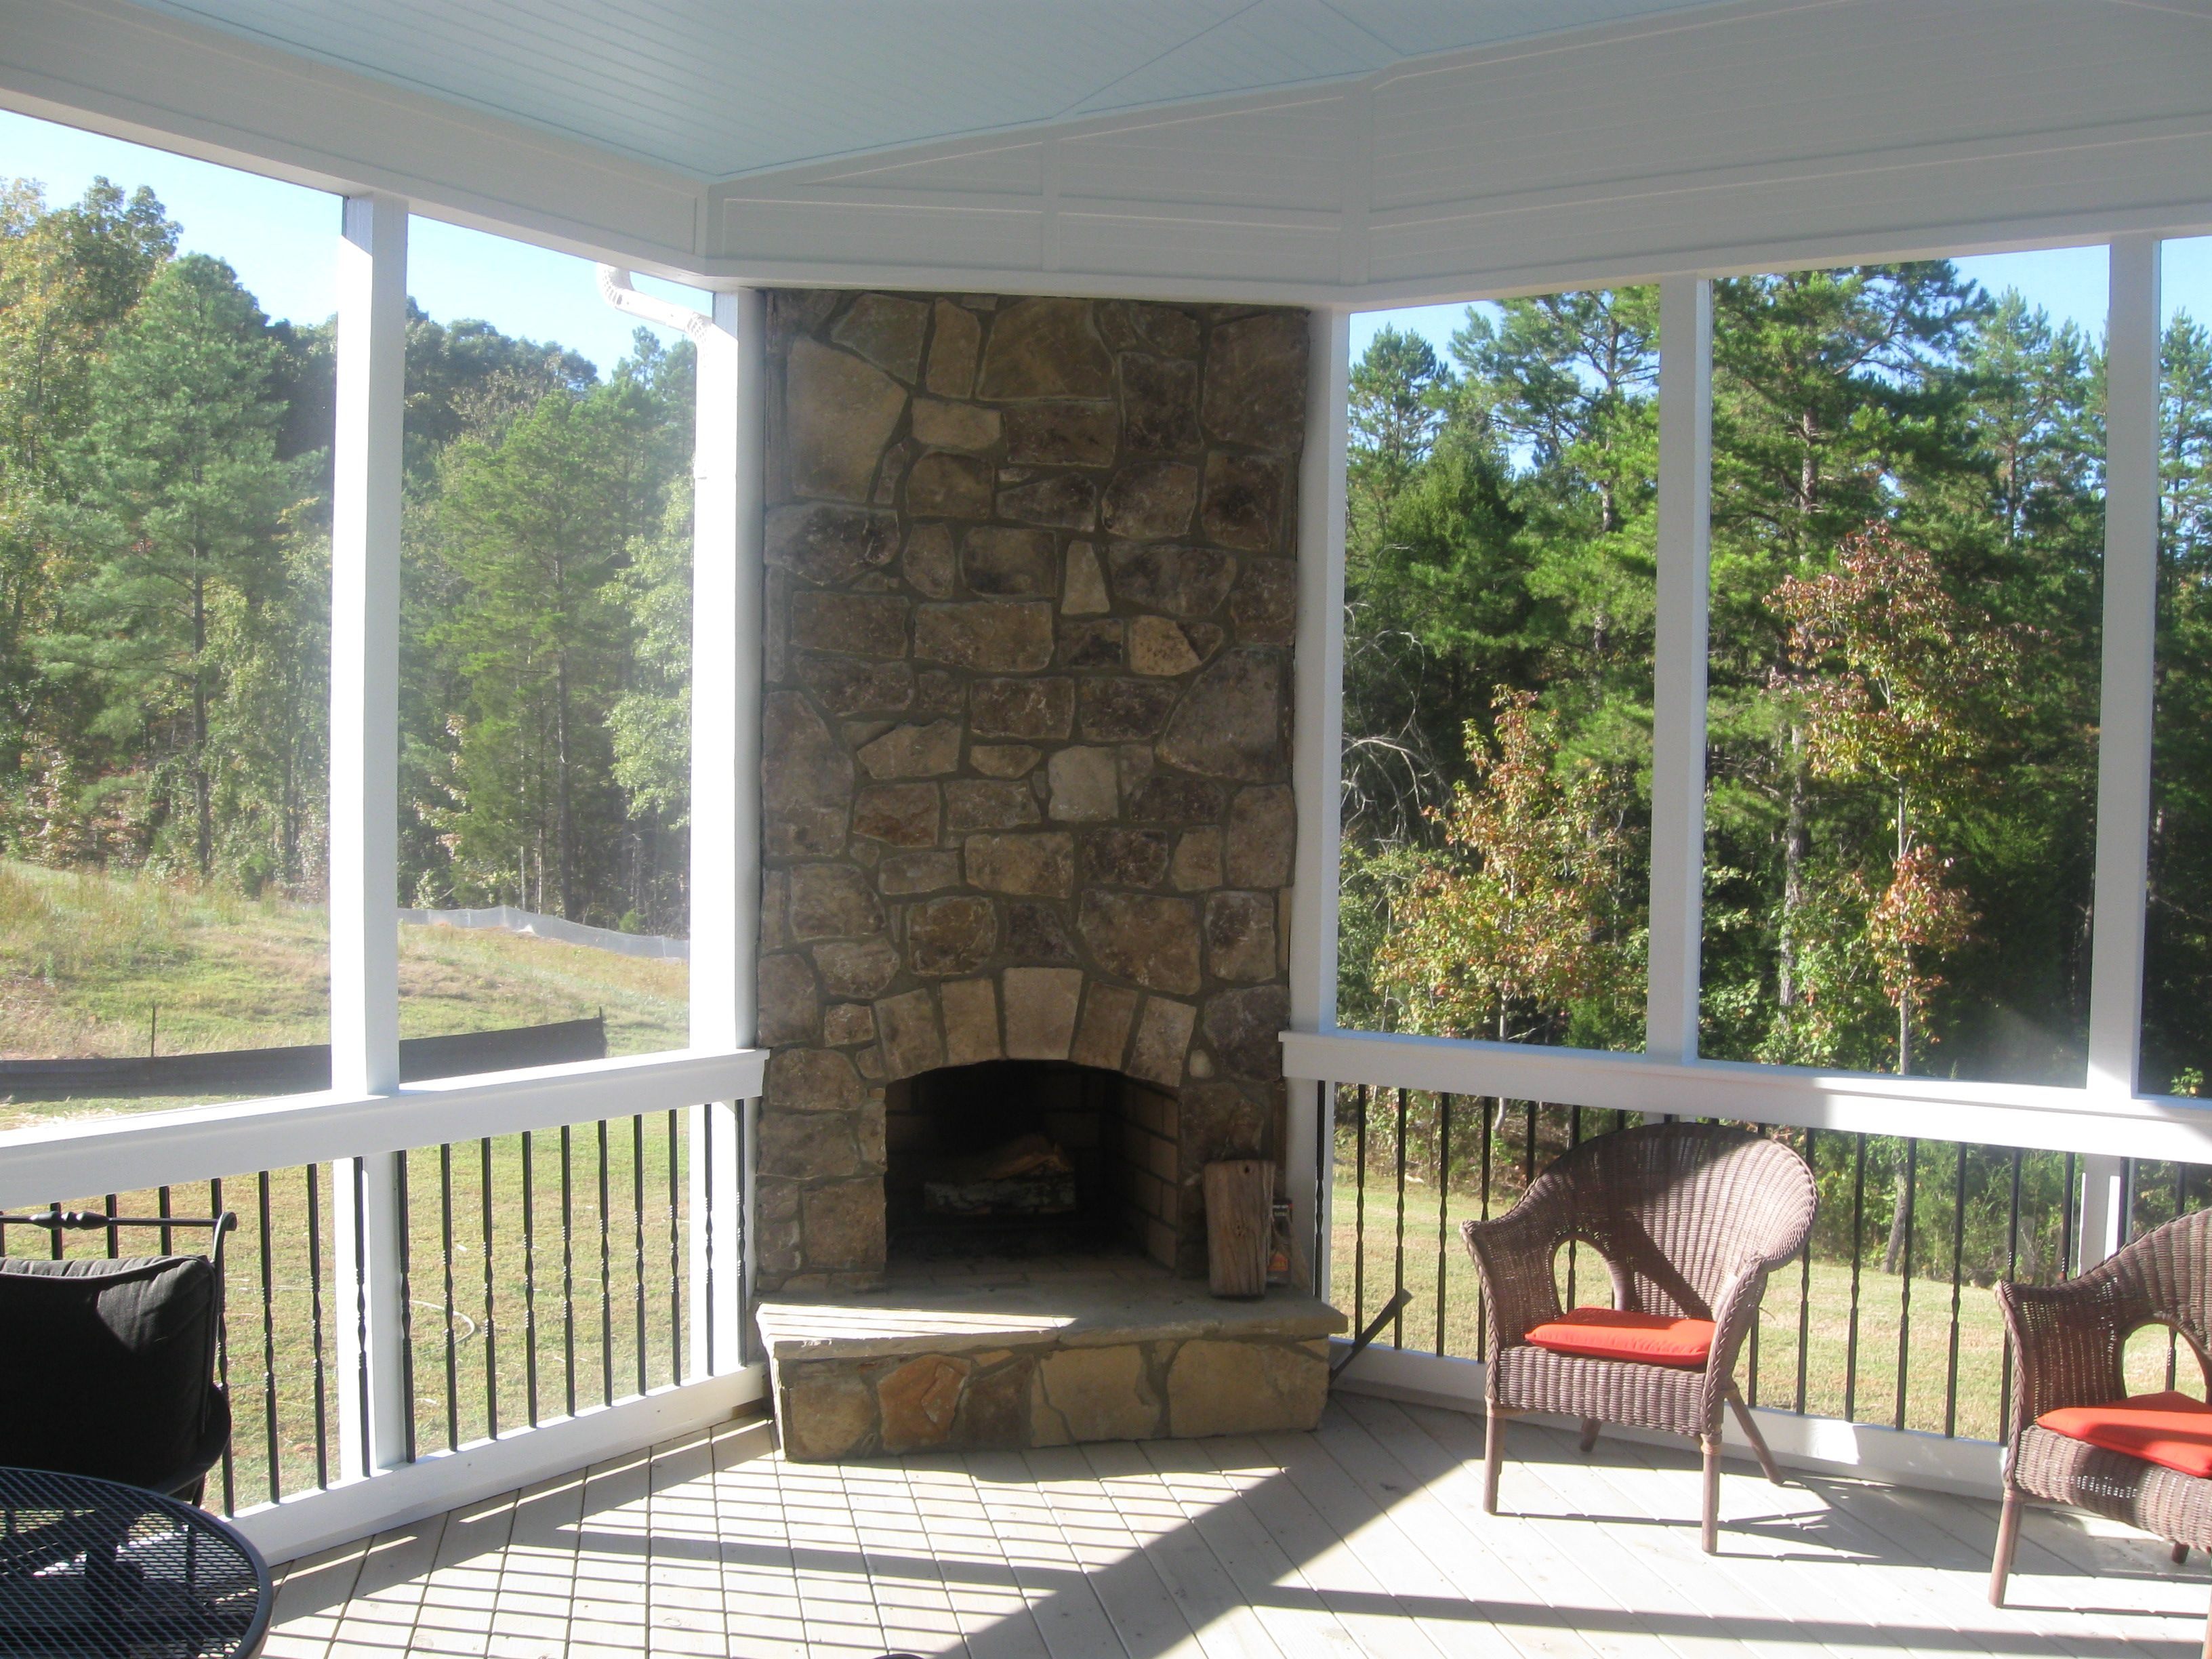 Screened In Porch Ideas Design all images Screened In Porch Ideas Outdoor Fireplace Integrated Into Your Screen Porch